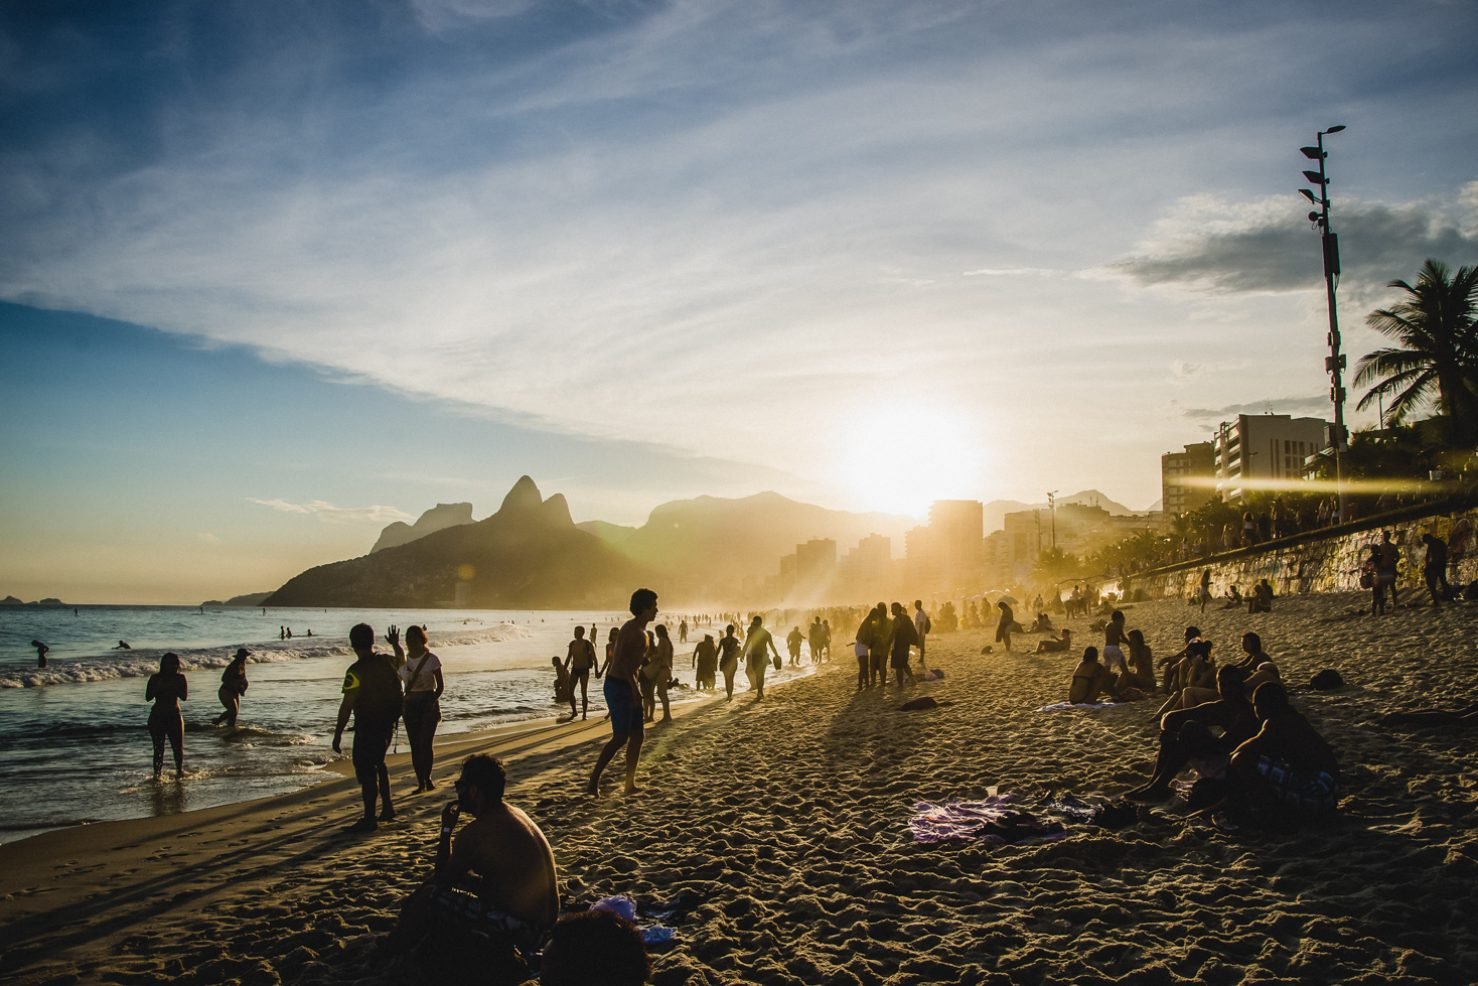 People are seen at Ipanema beach as the sun sets.